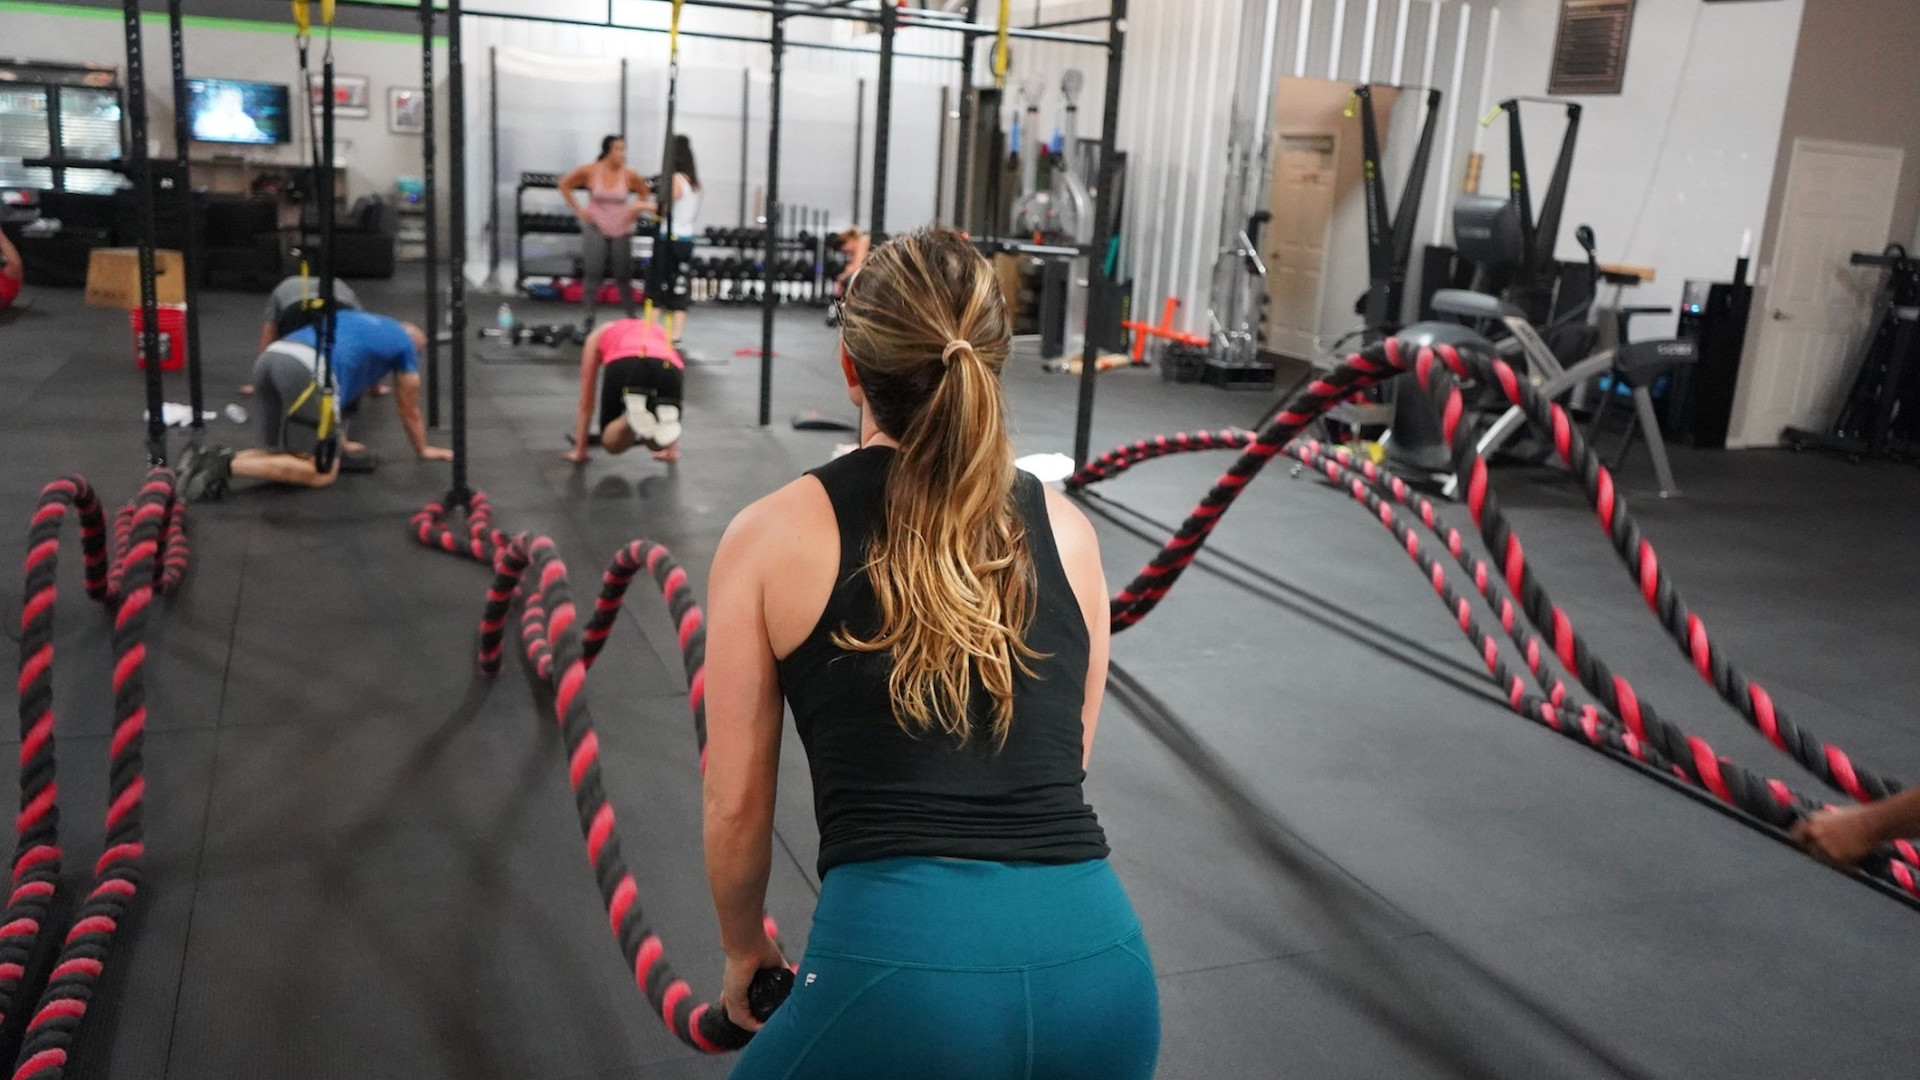 """<style> v {   text-shadow: 2px 2px 8px #007A9C; } </style><v style=""""color:white""""><strong>Personal Training - Group Training - Les Mills Classes</strong></v>"""